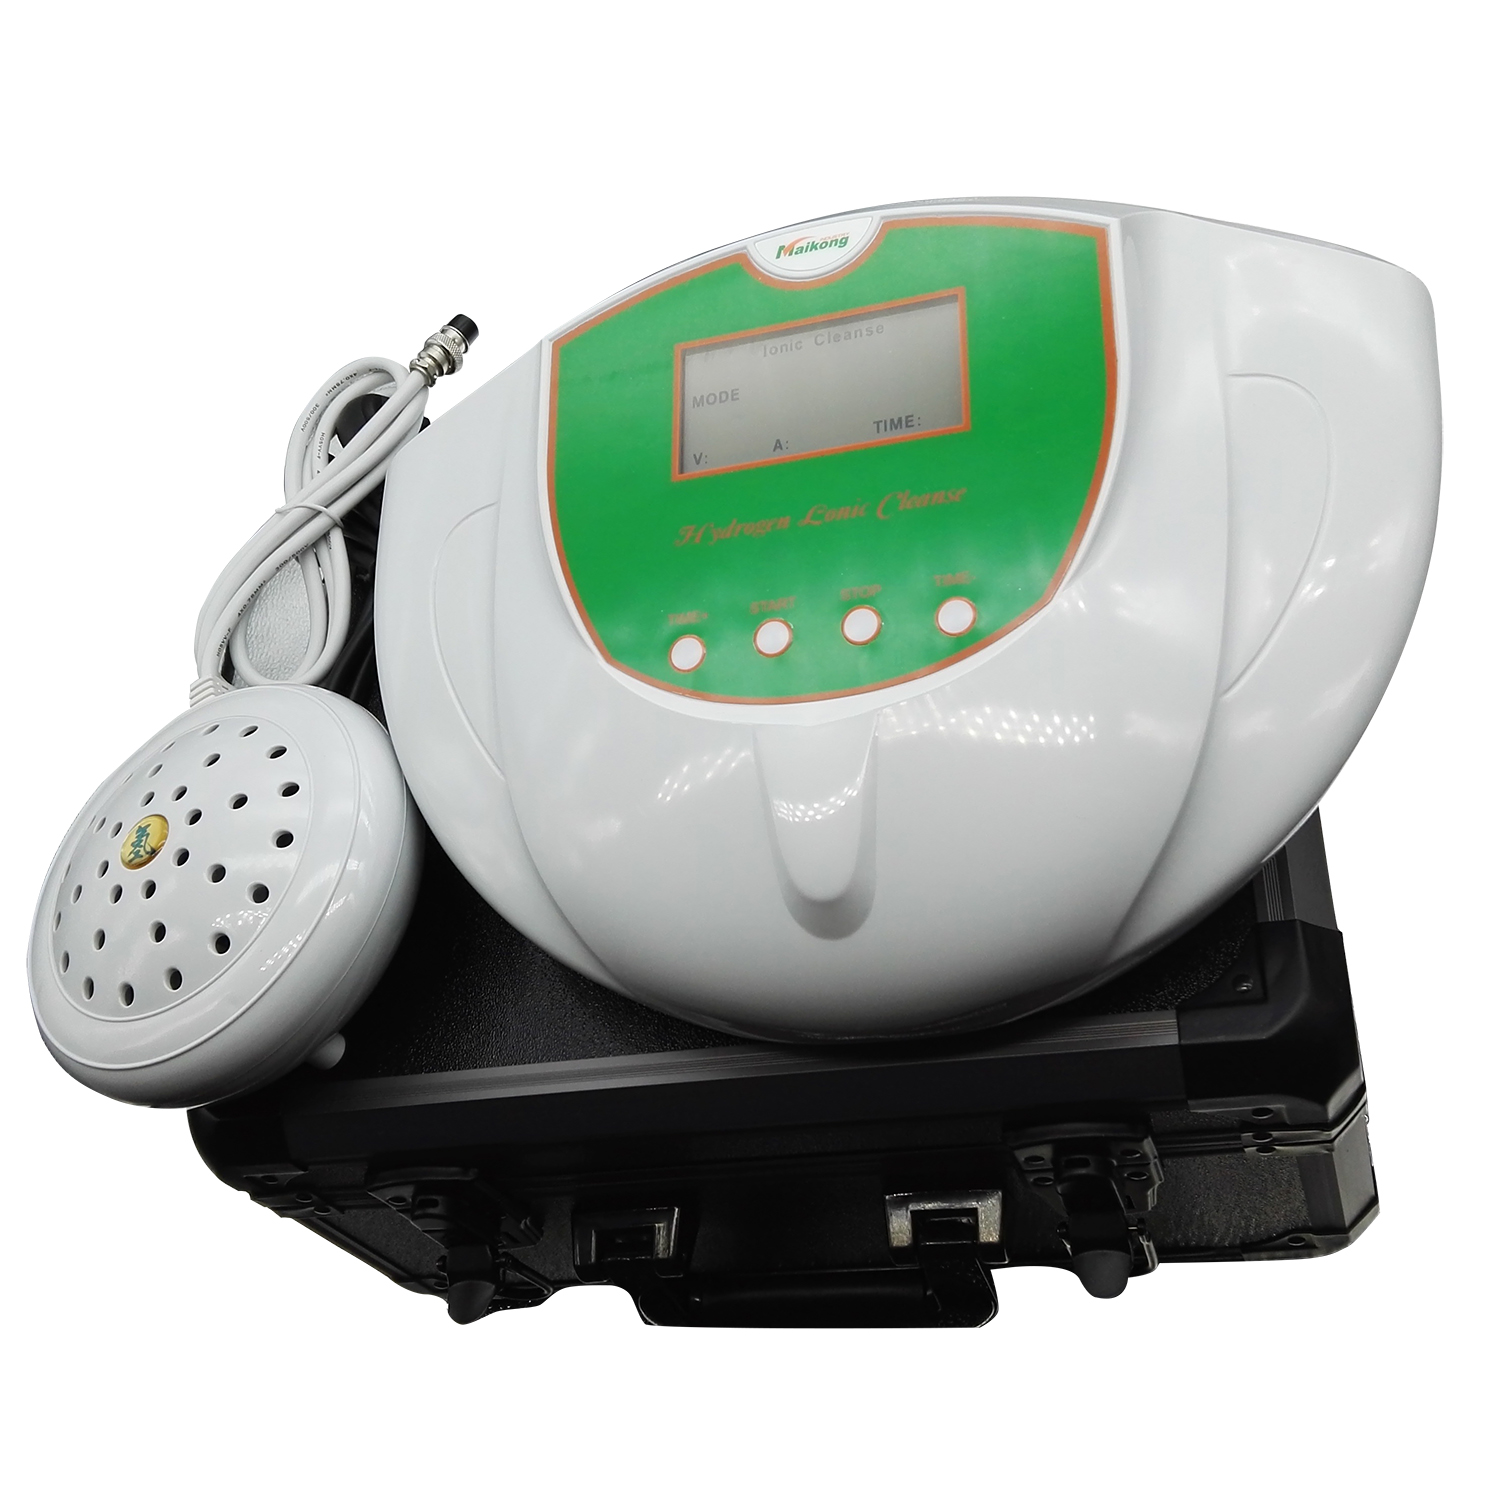 Detox Foot Spa Machine How Does It Work?